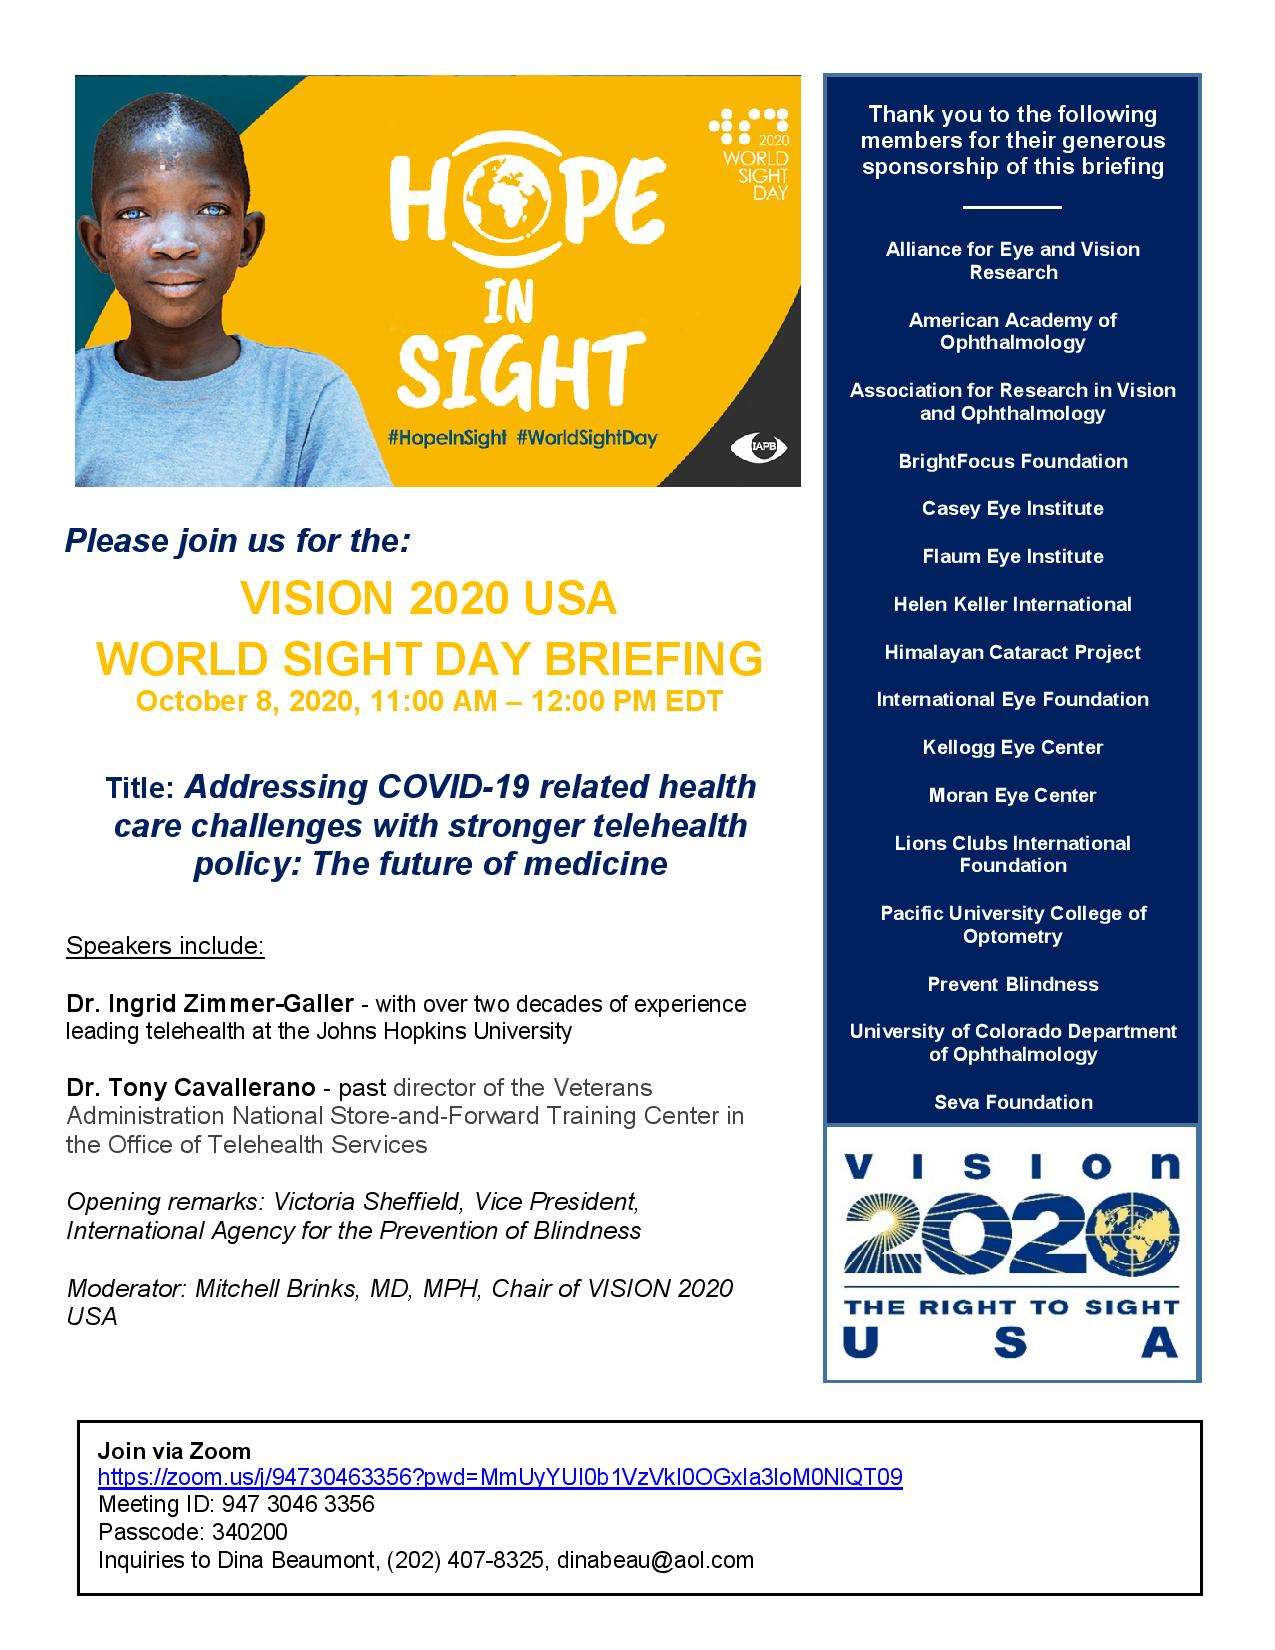 World_Sight_Day_Invitation_2020-10-8-2020-page-001.jpg